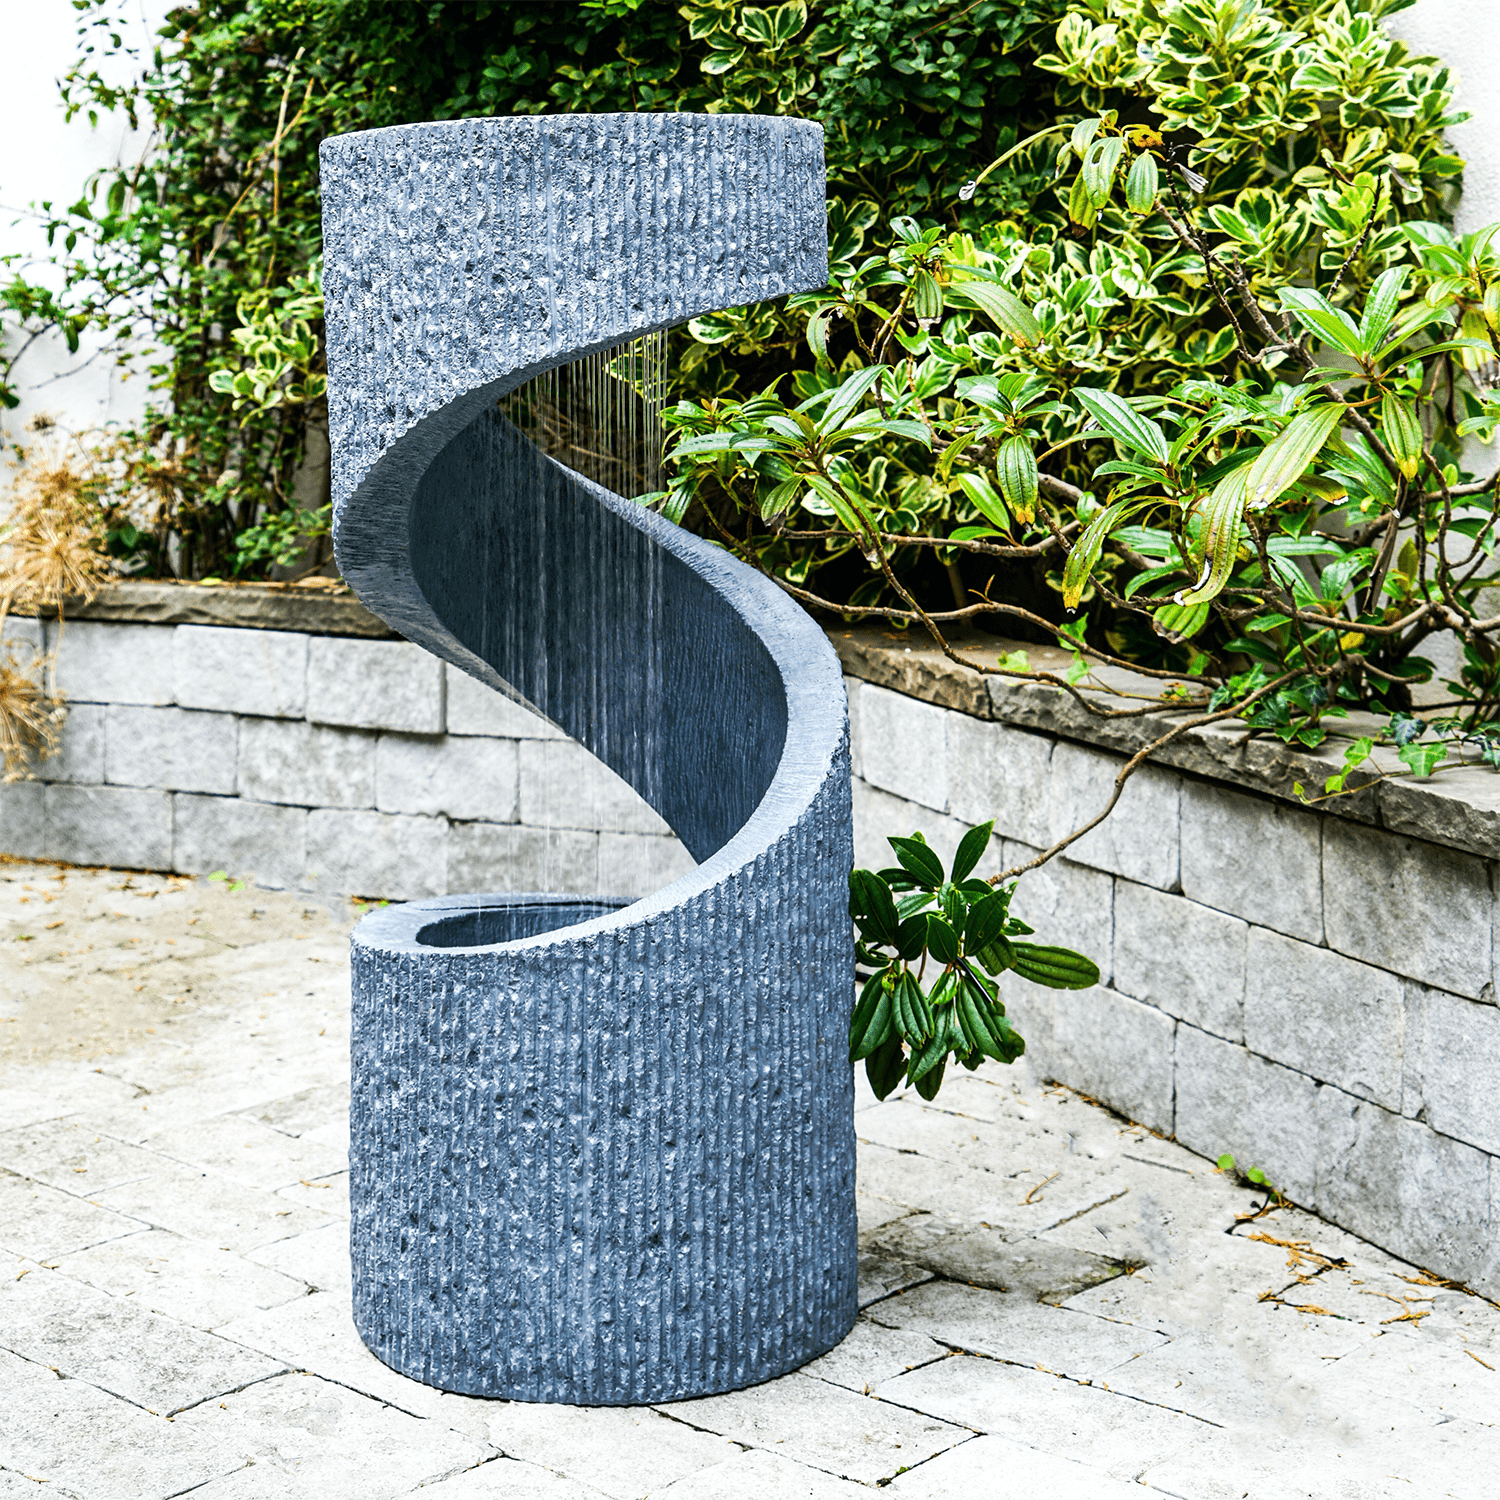 Outdoor Spiral Water Feature Cement 163 349 99